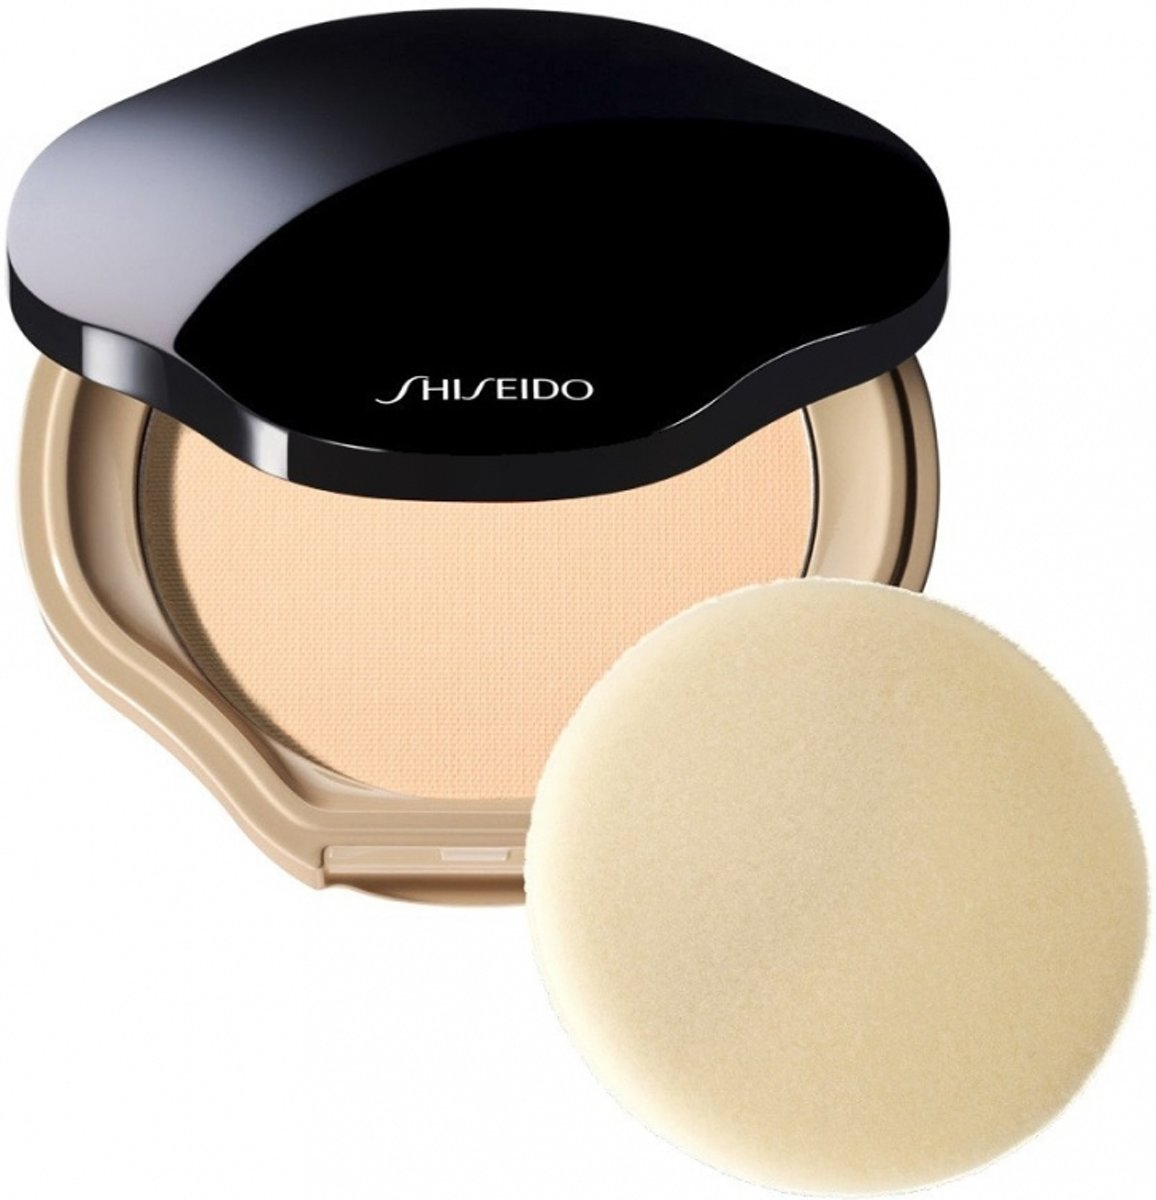 Shiseido Sheer and Perfect Compact Foundation 10 gr - I20